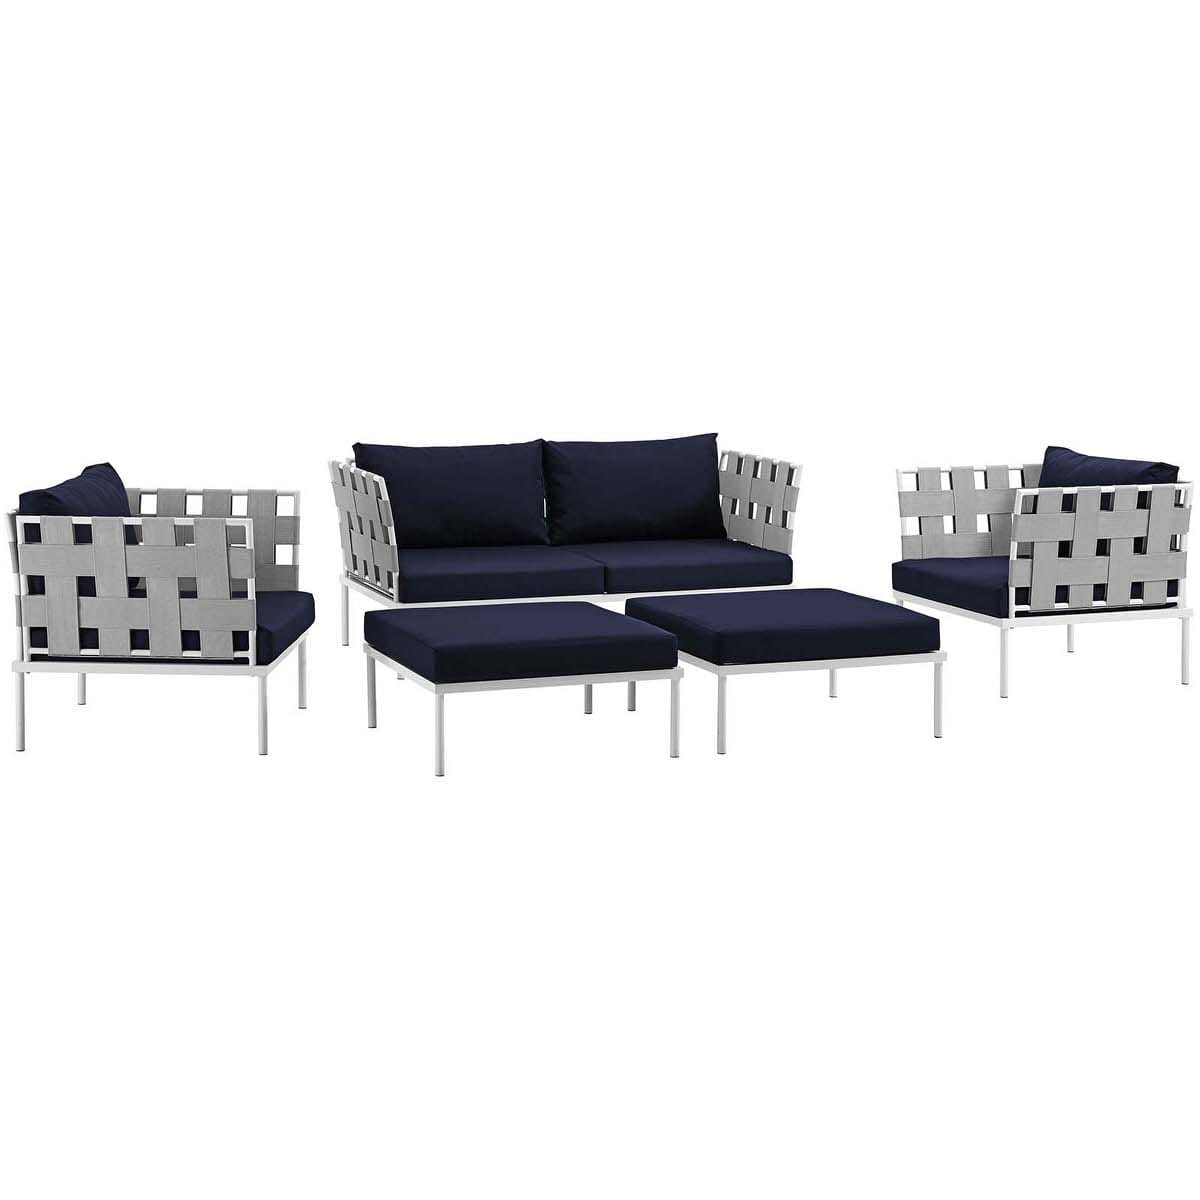 Harmony 5 Piece Outdoor Patio Aluminum Sectional Sofa Set White Navy by  Modern Living